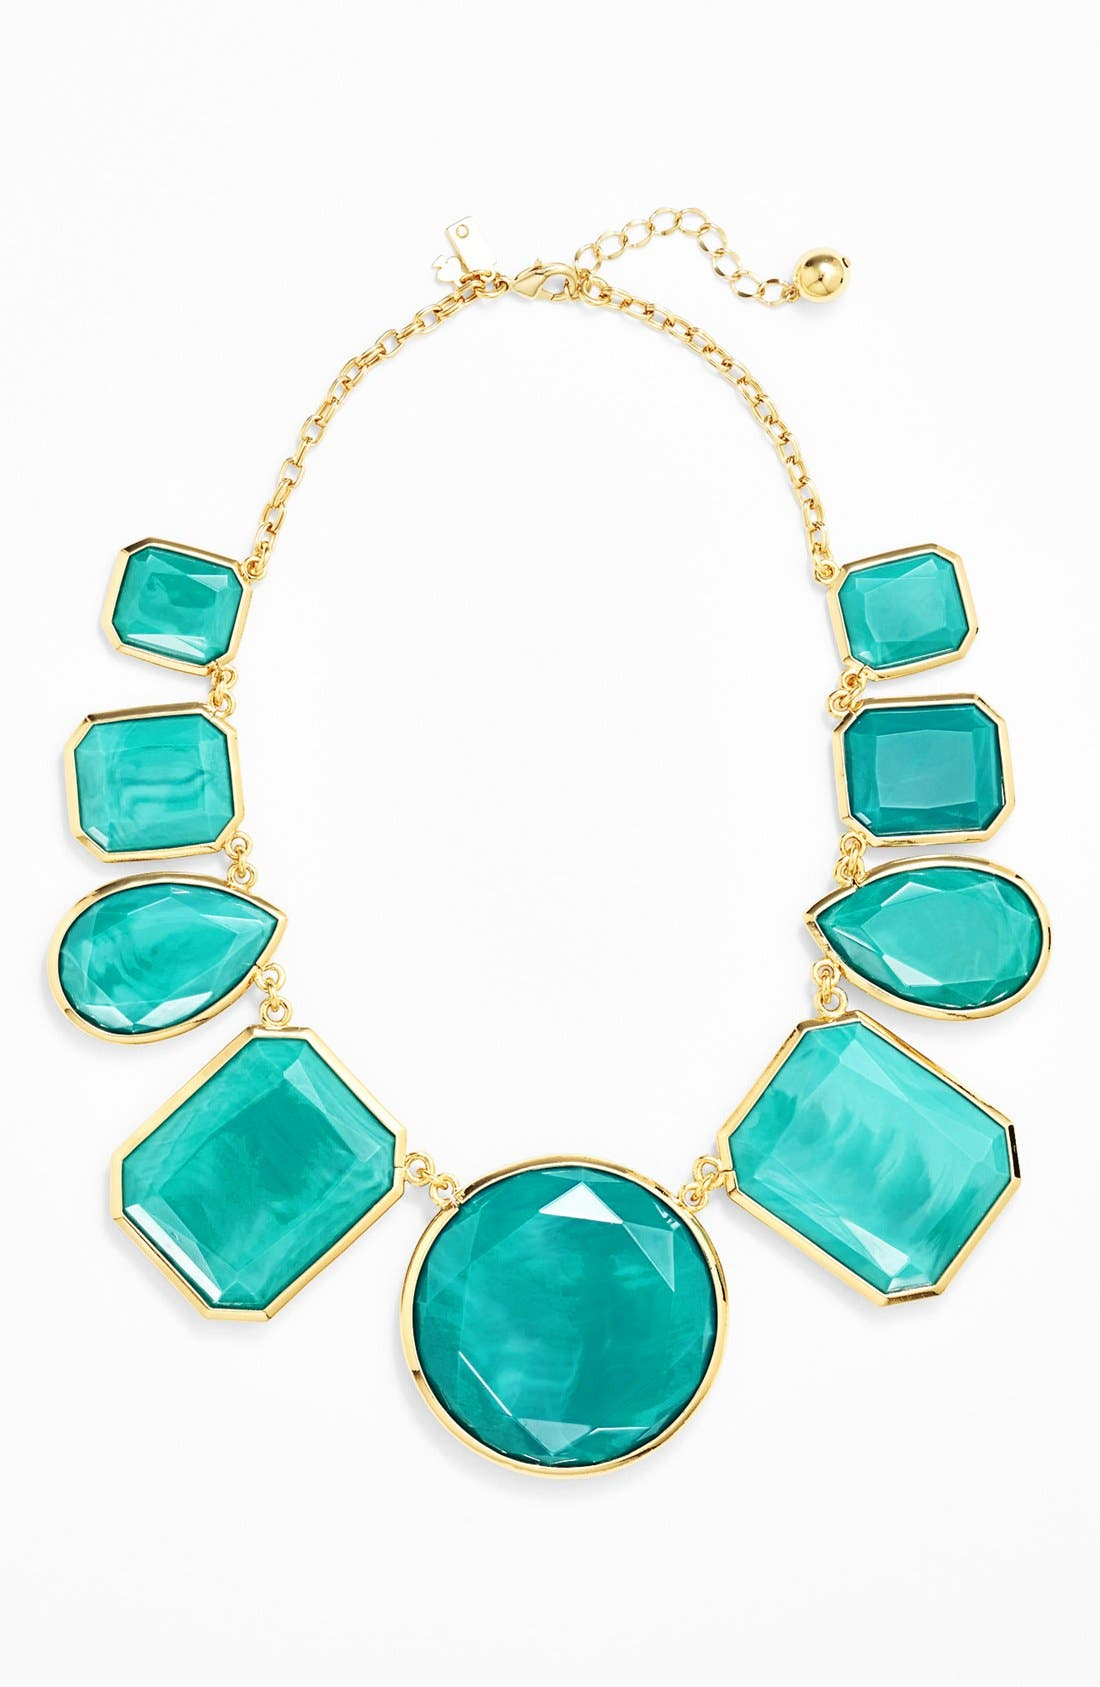 Main Image - kate spade new york 'swirl around' graduated stone necklace